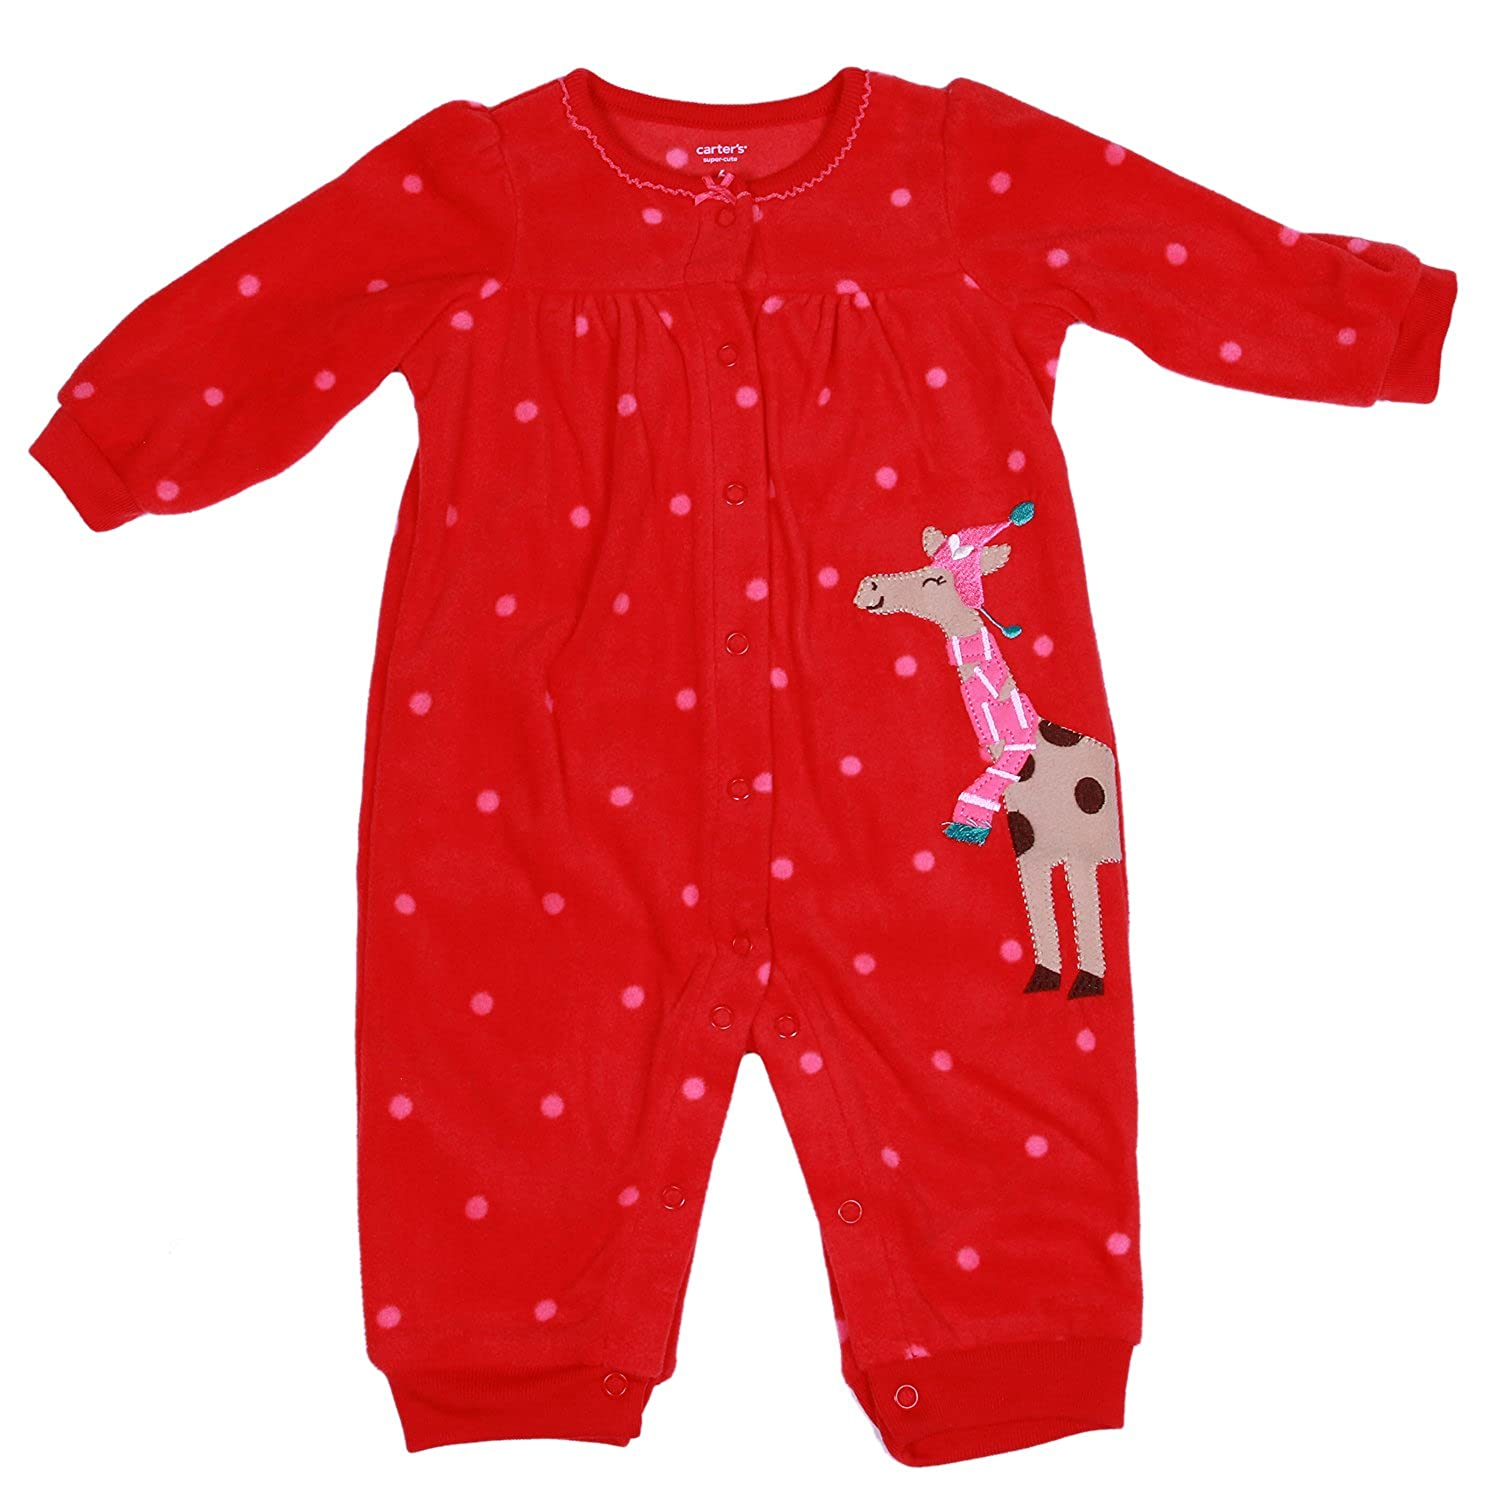 Carters Girls Winter Fleece Jumper Pajamas Newborn 5 In 1 Infant And Toddler Rompers Clothing